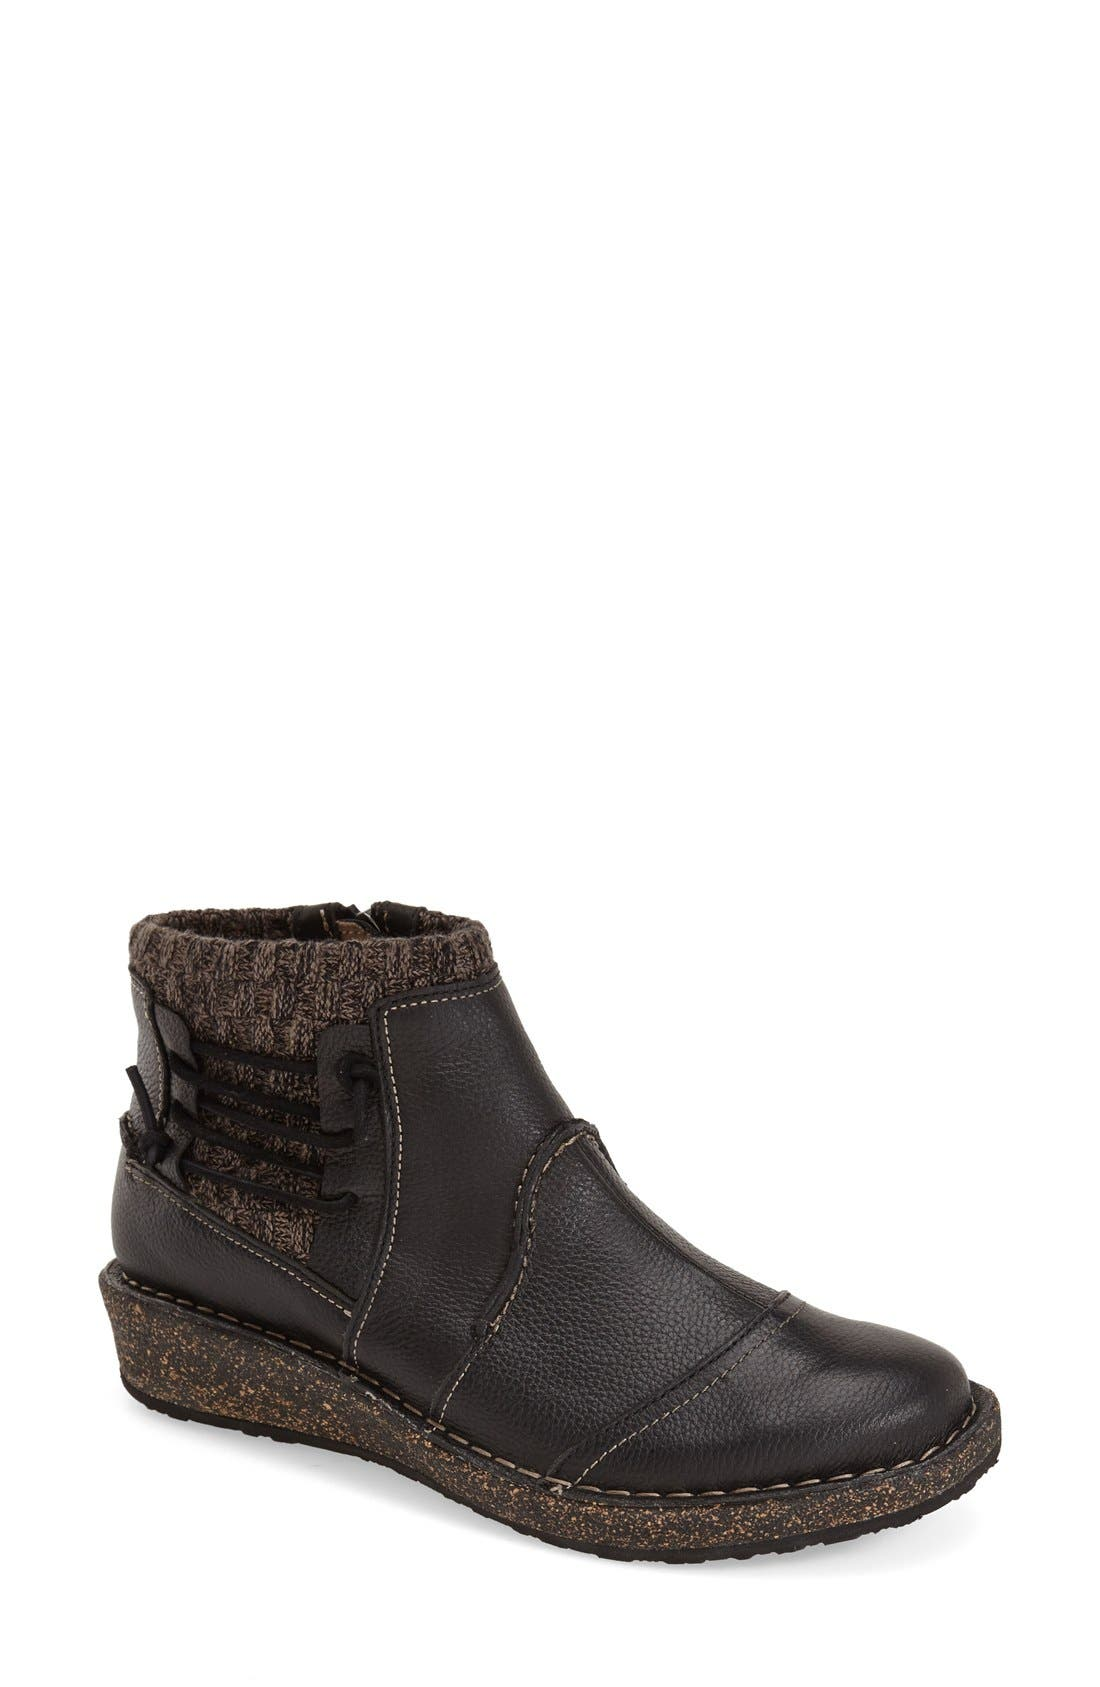 'Tessa' Ankle Boot, Main, color, 001